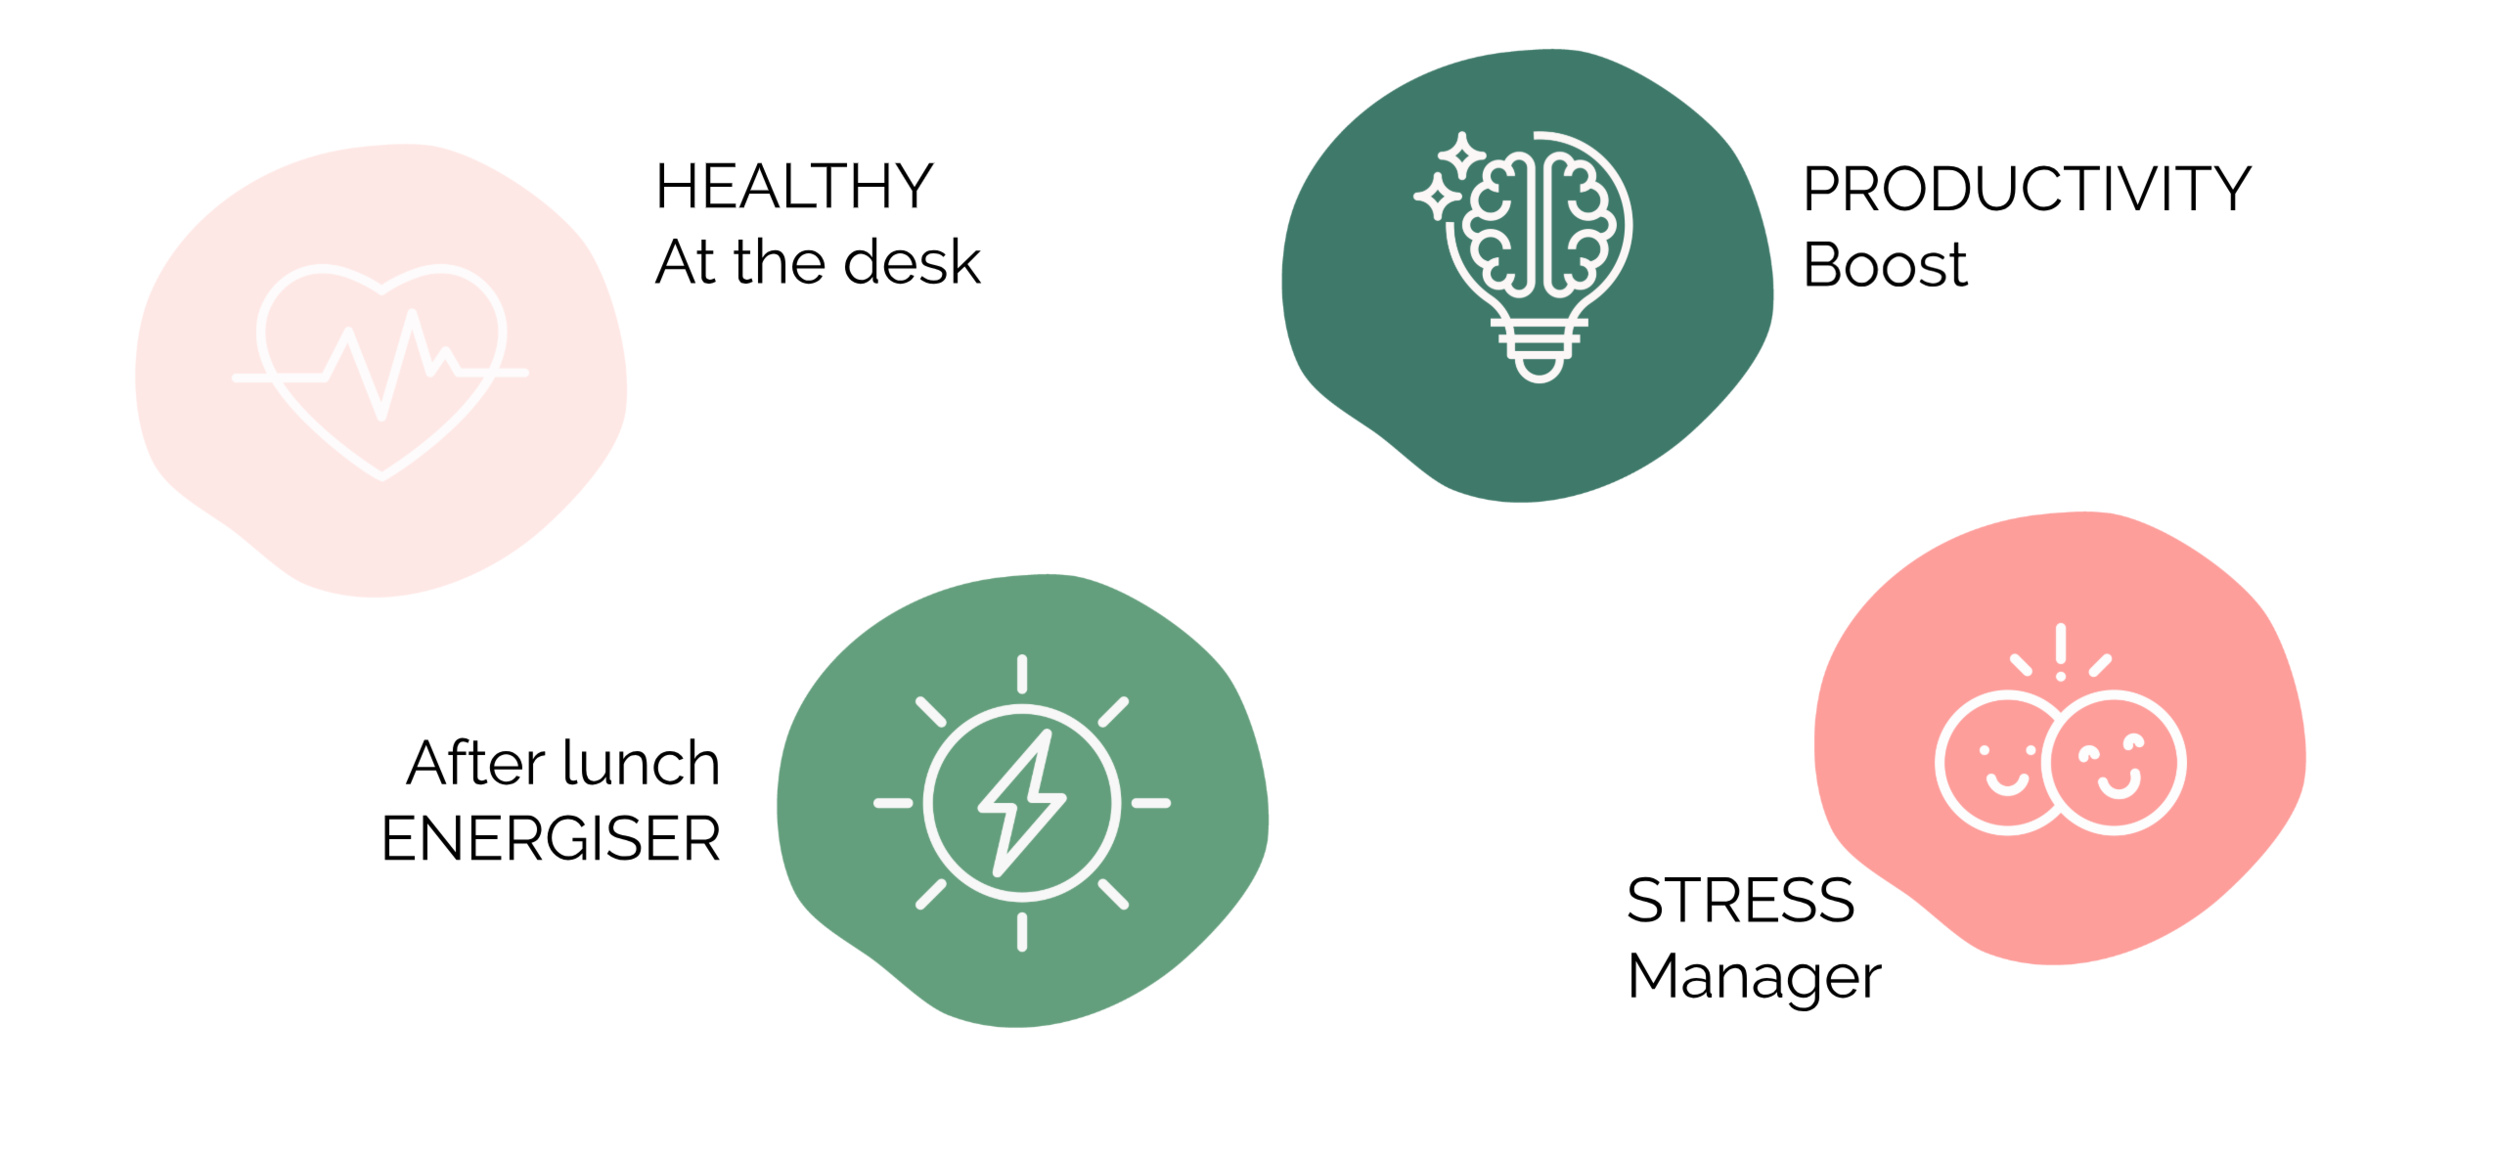 real-life-yoga-methods-technique-reduce-stress-management-.png